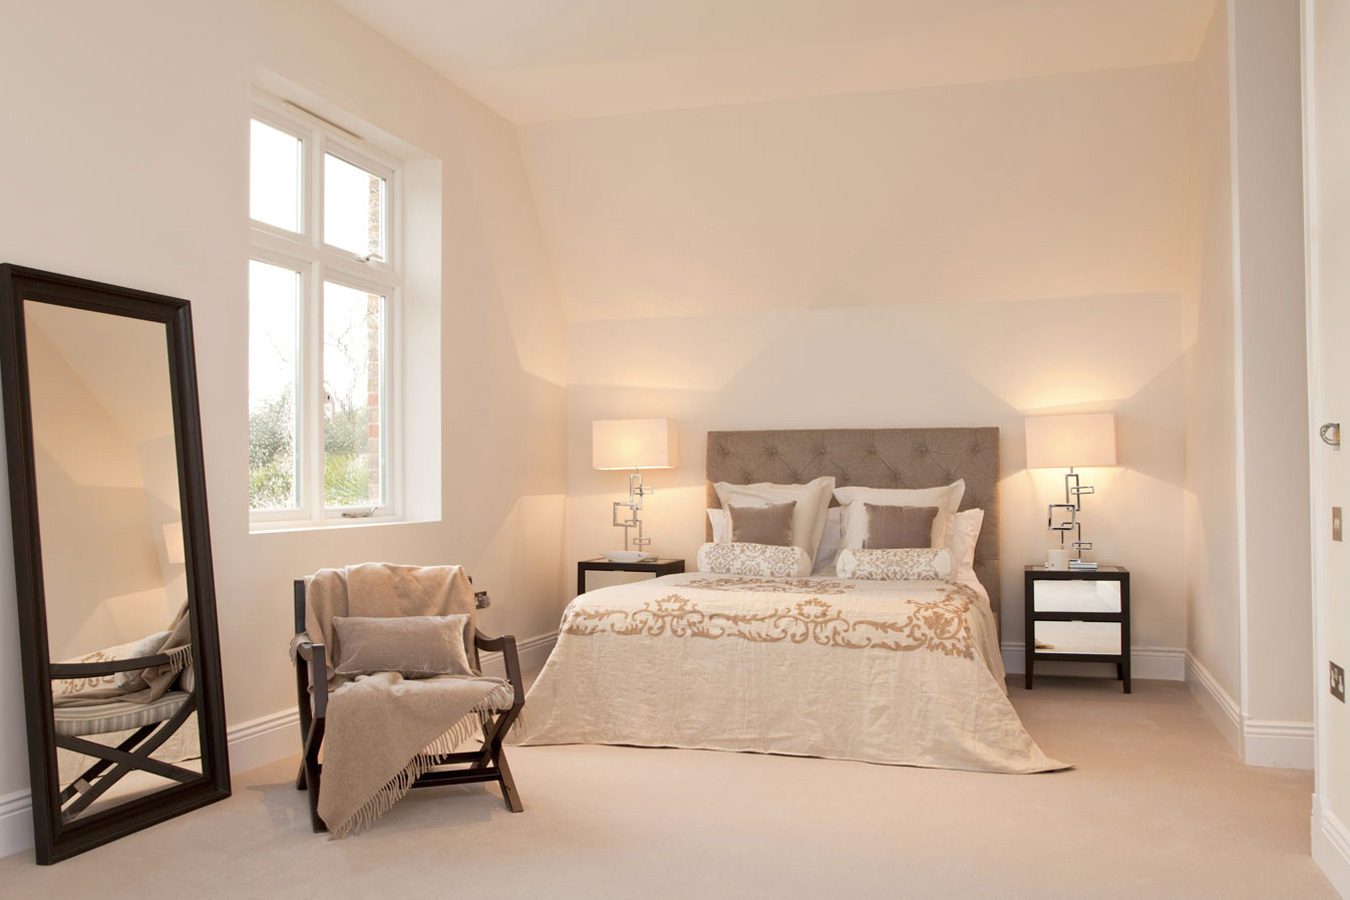 Design Box London - Interior Design - Richmond Park Home, TW10 - Bedroom